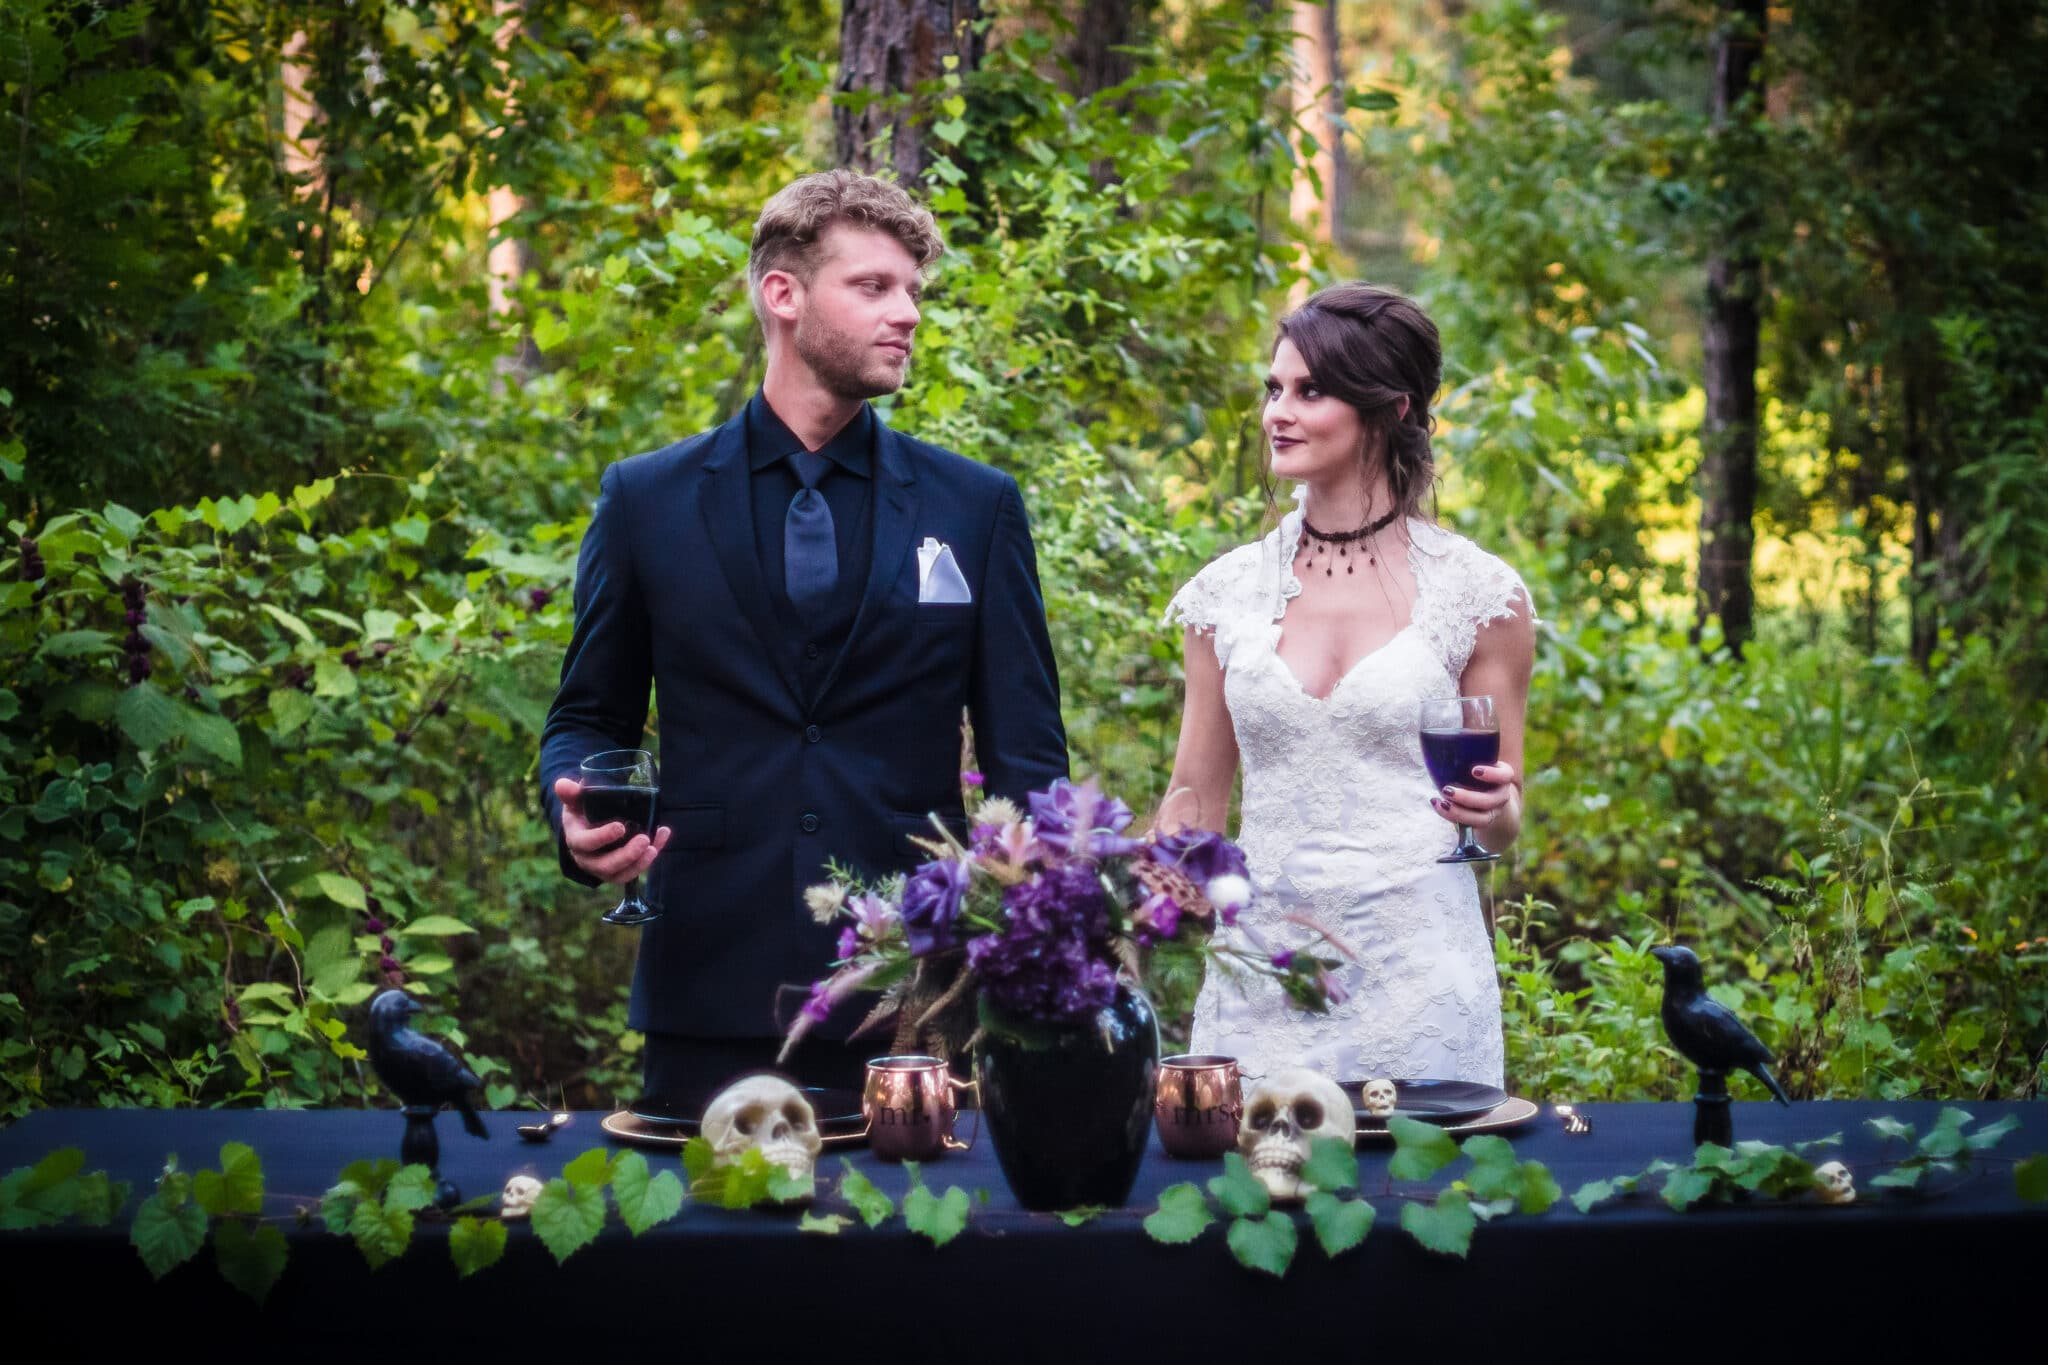 Gothic Wedding Ideas For The Perfect Themed Event ...